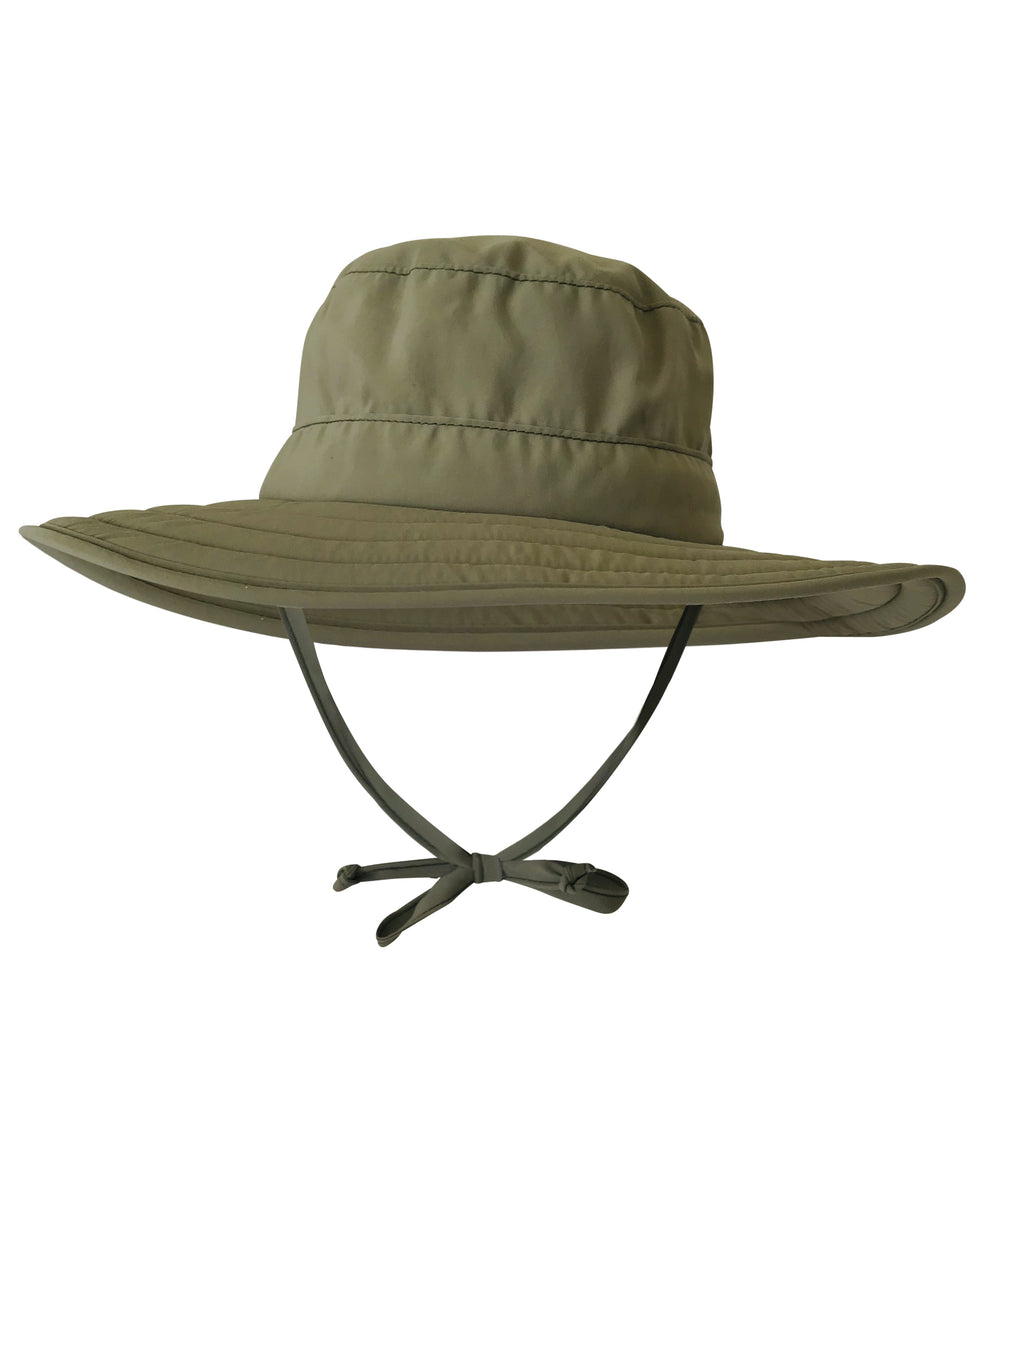 Children's ZeuKnLu Light Olive Drab ZeuKnLu Sun Hat Front View